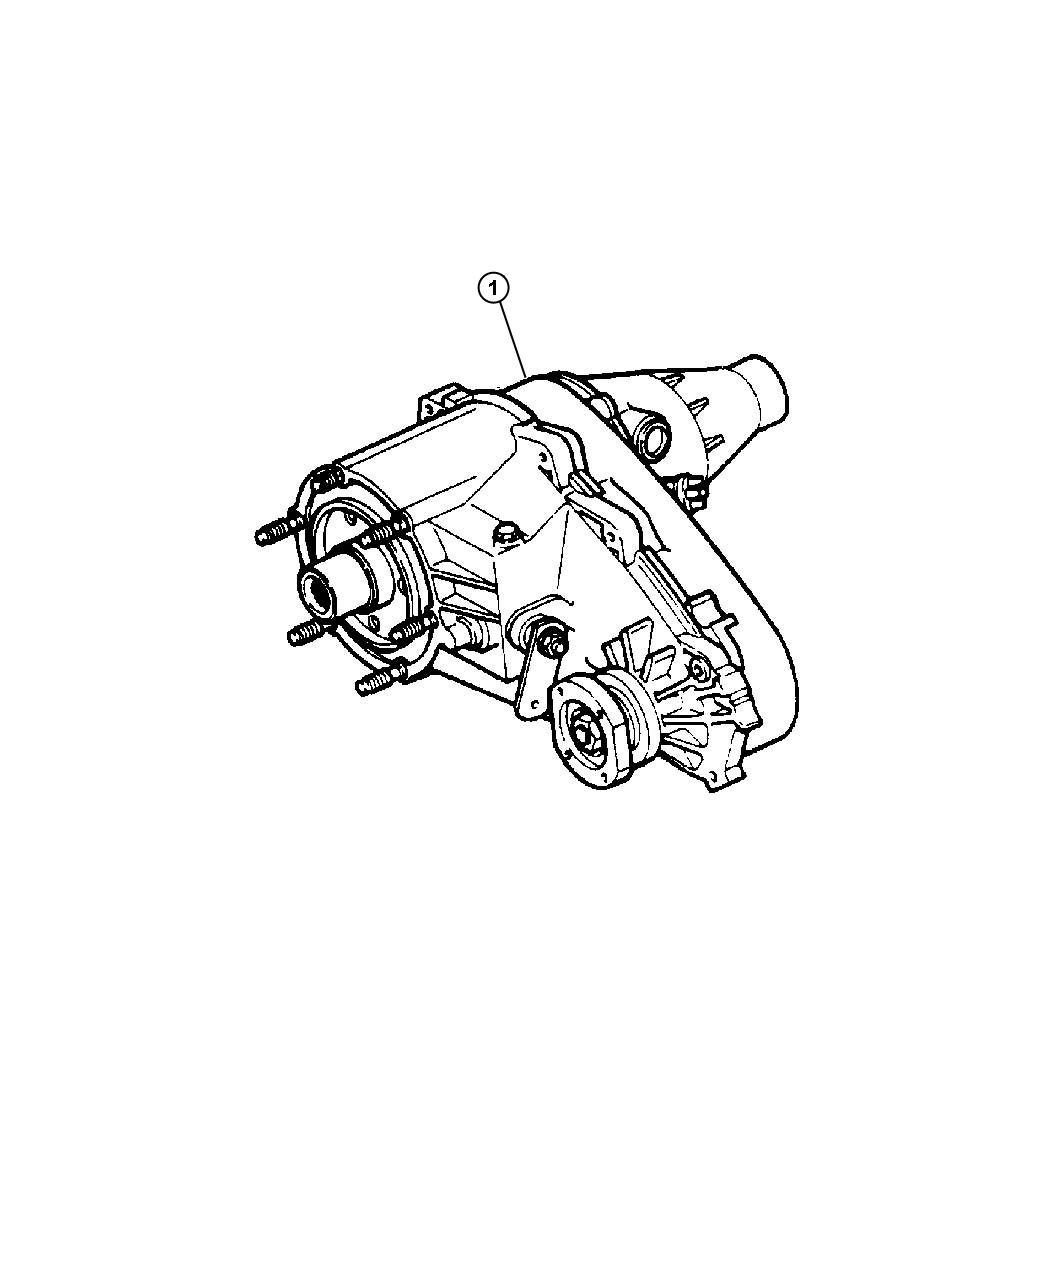 1999 Dodge Ram 1500 Transfer Case Assembly 231 [DHK]